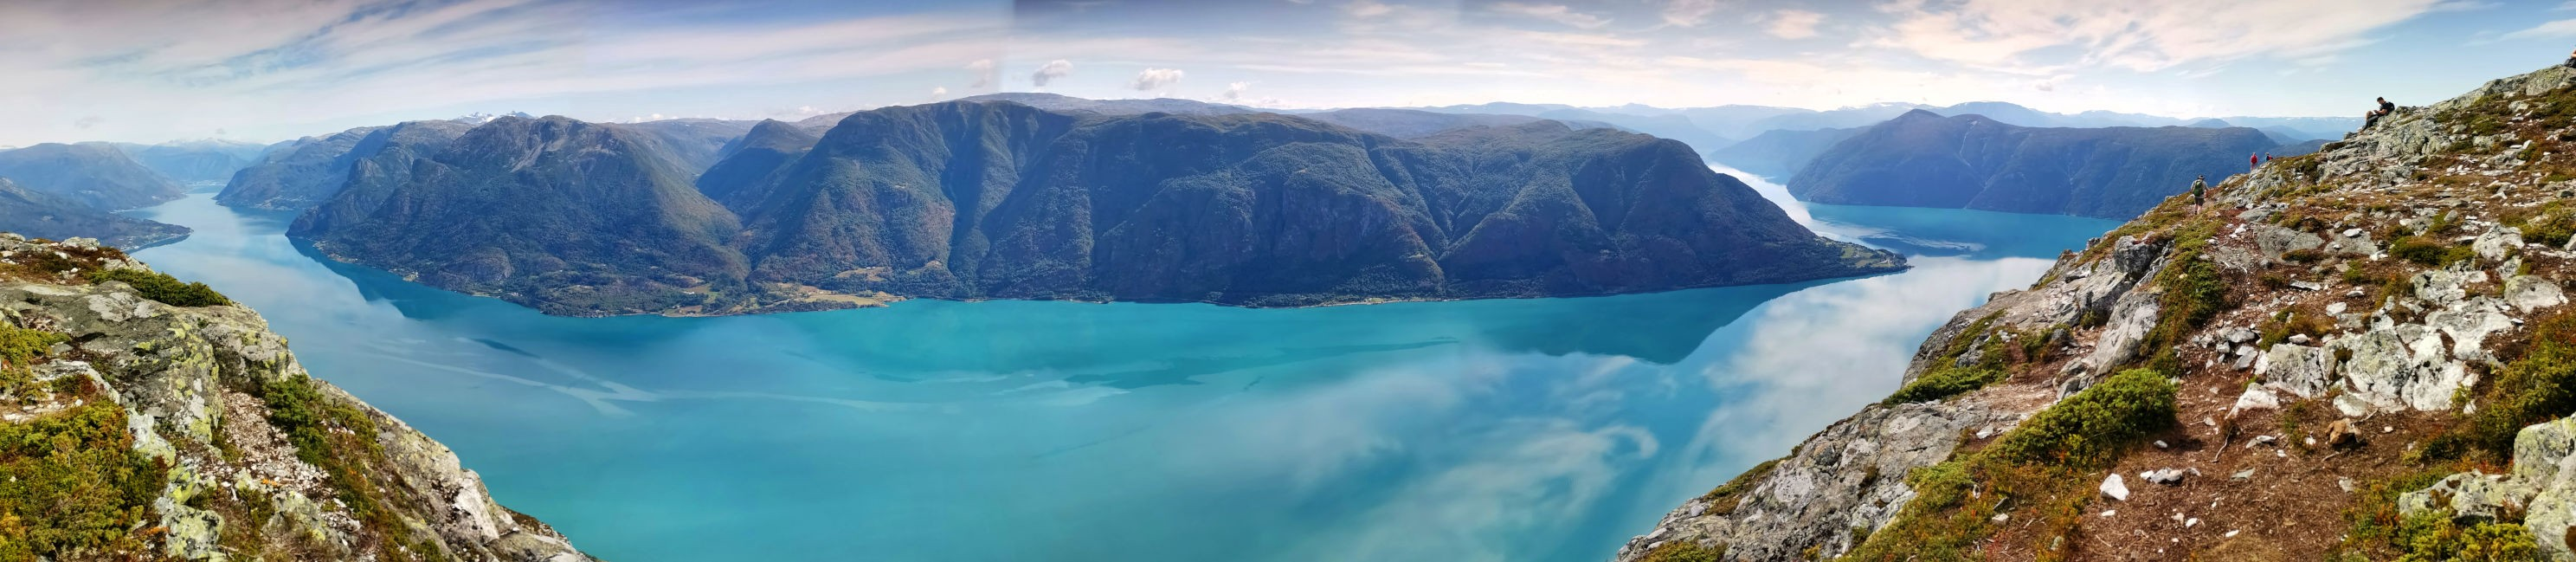 A View from Molden down to Lustrafjord